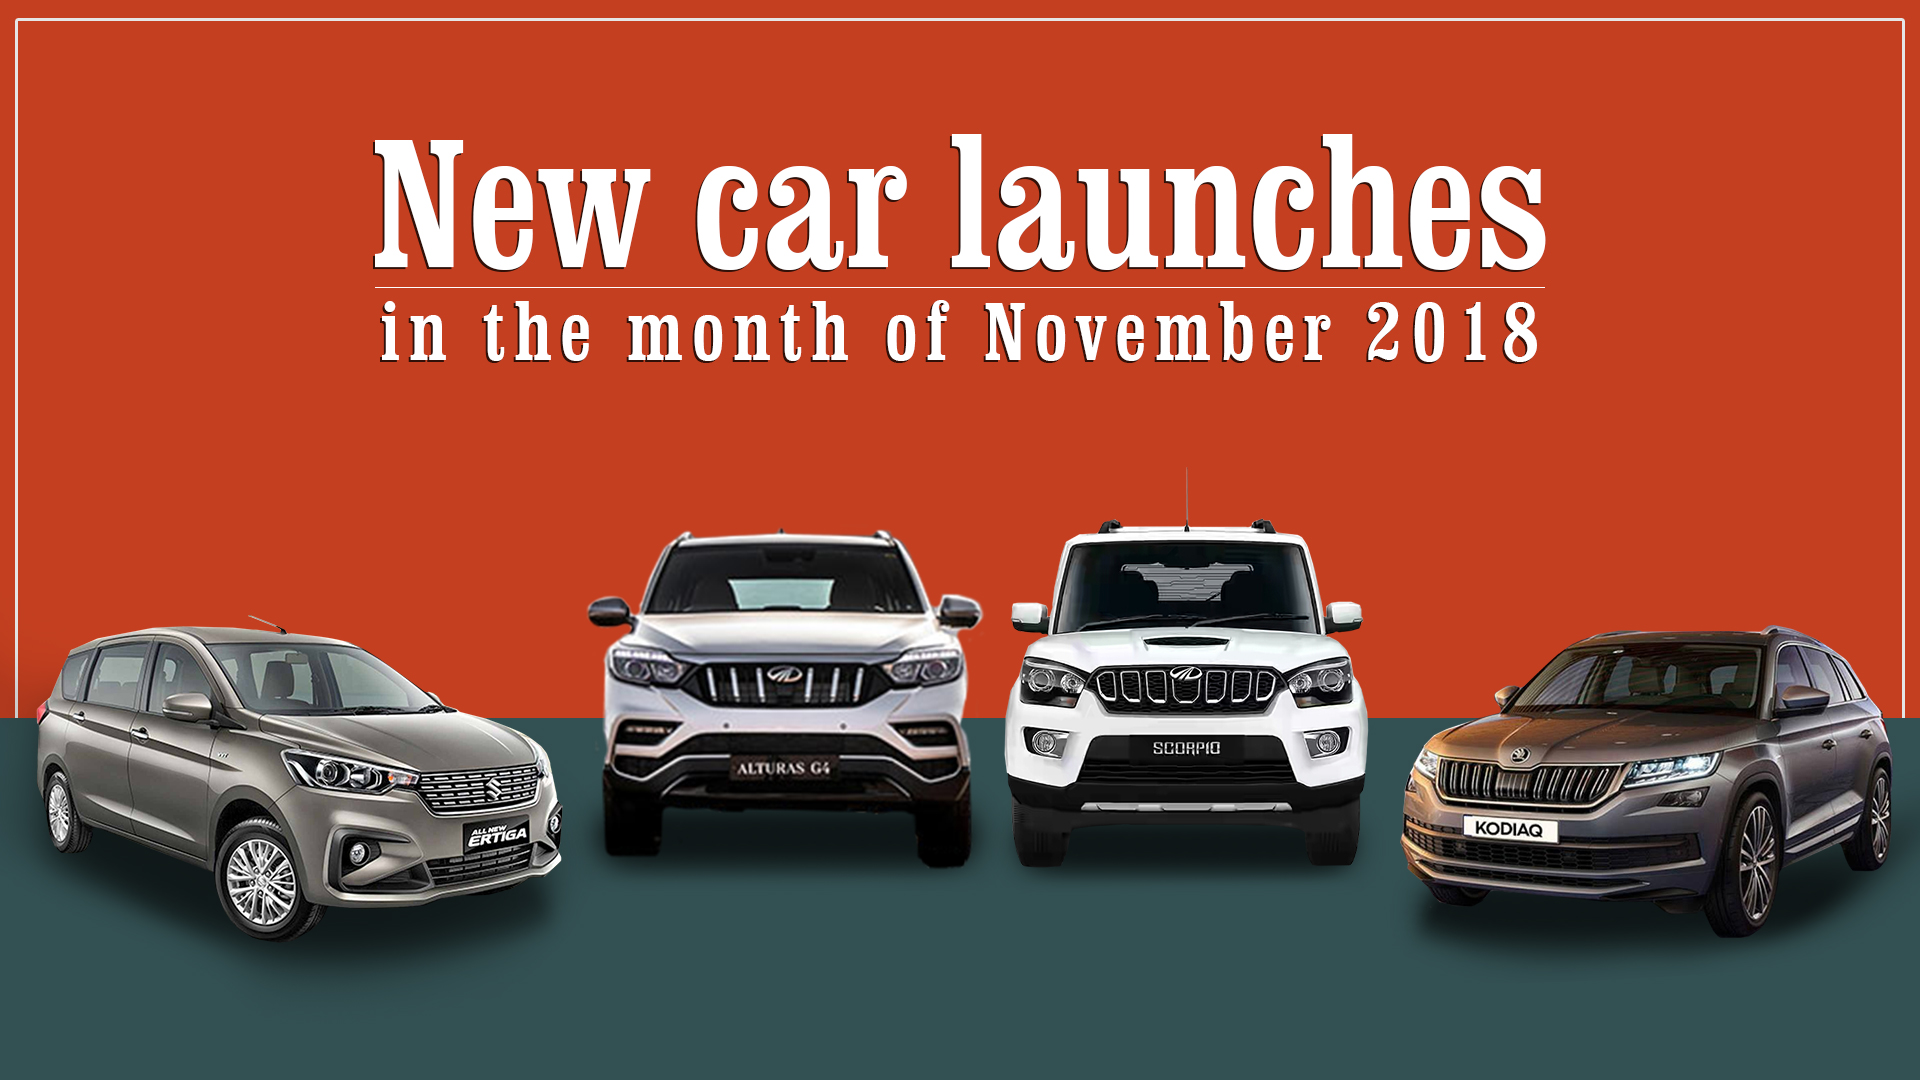 New Car Launches by Mahindra, Maruti Suzuki and Skoda in November-18